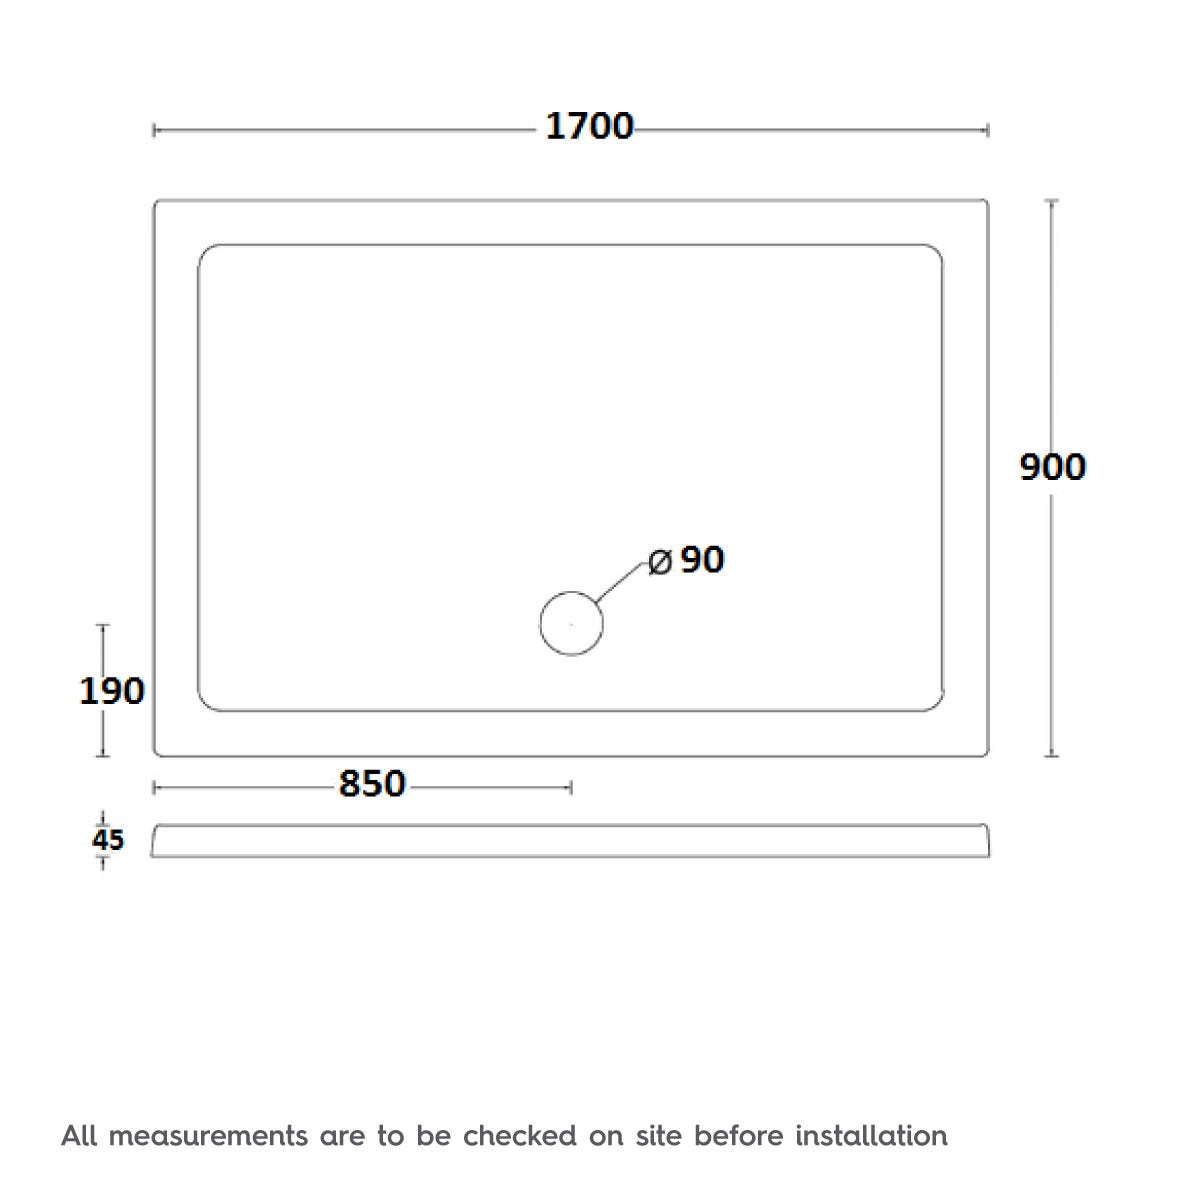 Dimensions for 1700 x 900